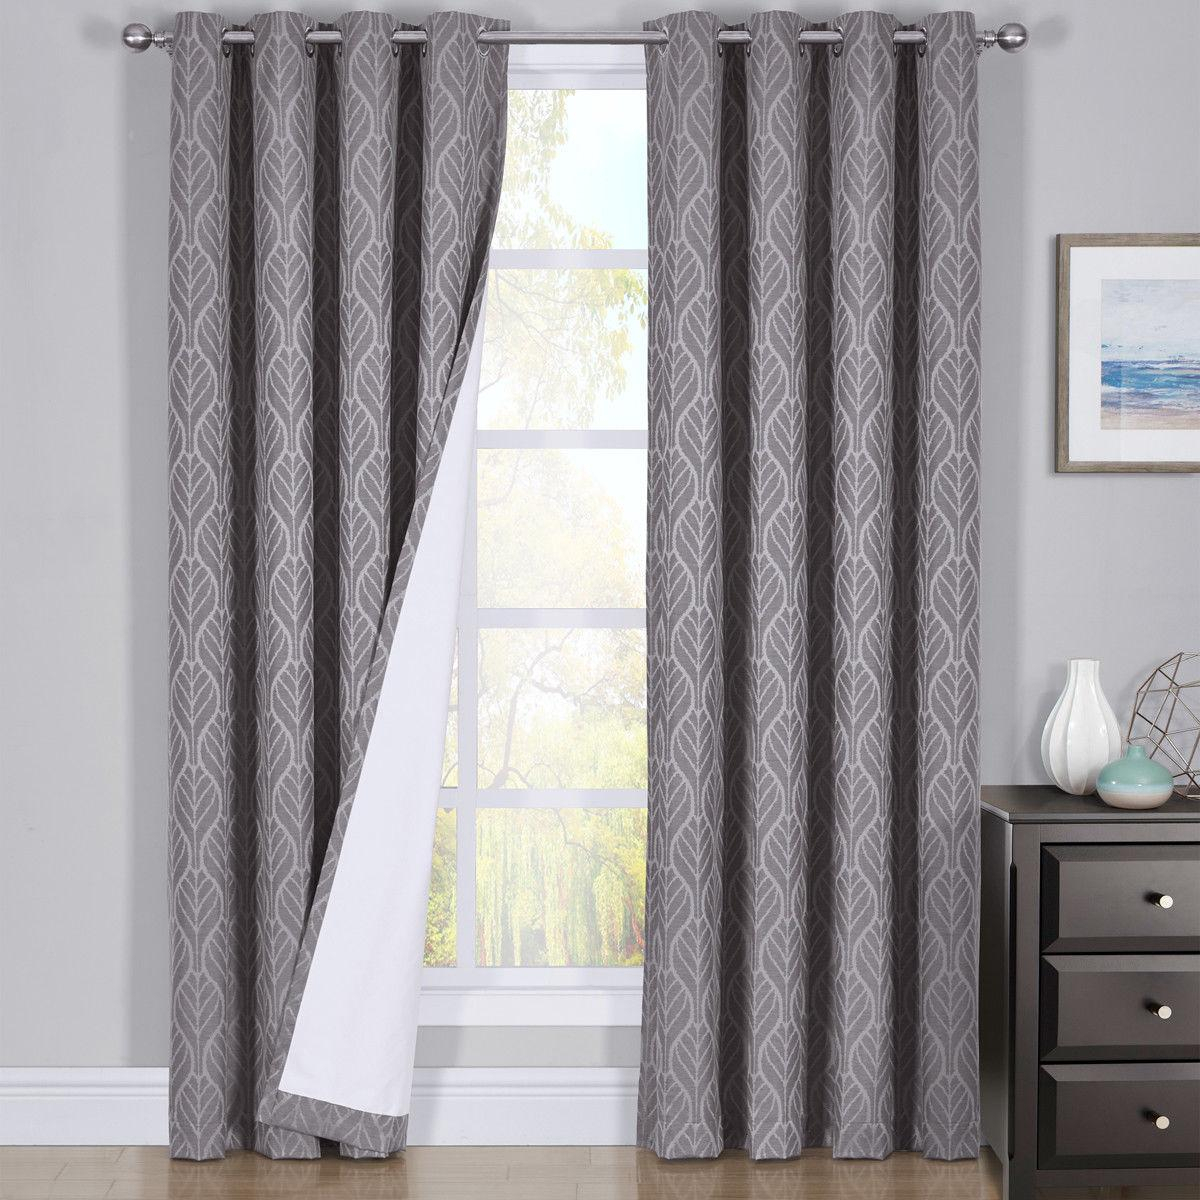 Hilton Blackout Curtains Panels Jacquard Thermal Insulated Pairs Intended For Thermal Insulated Blackout Curtain Panel Pairs (View 13 of 30)